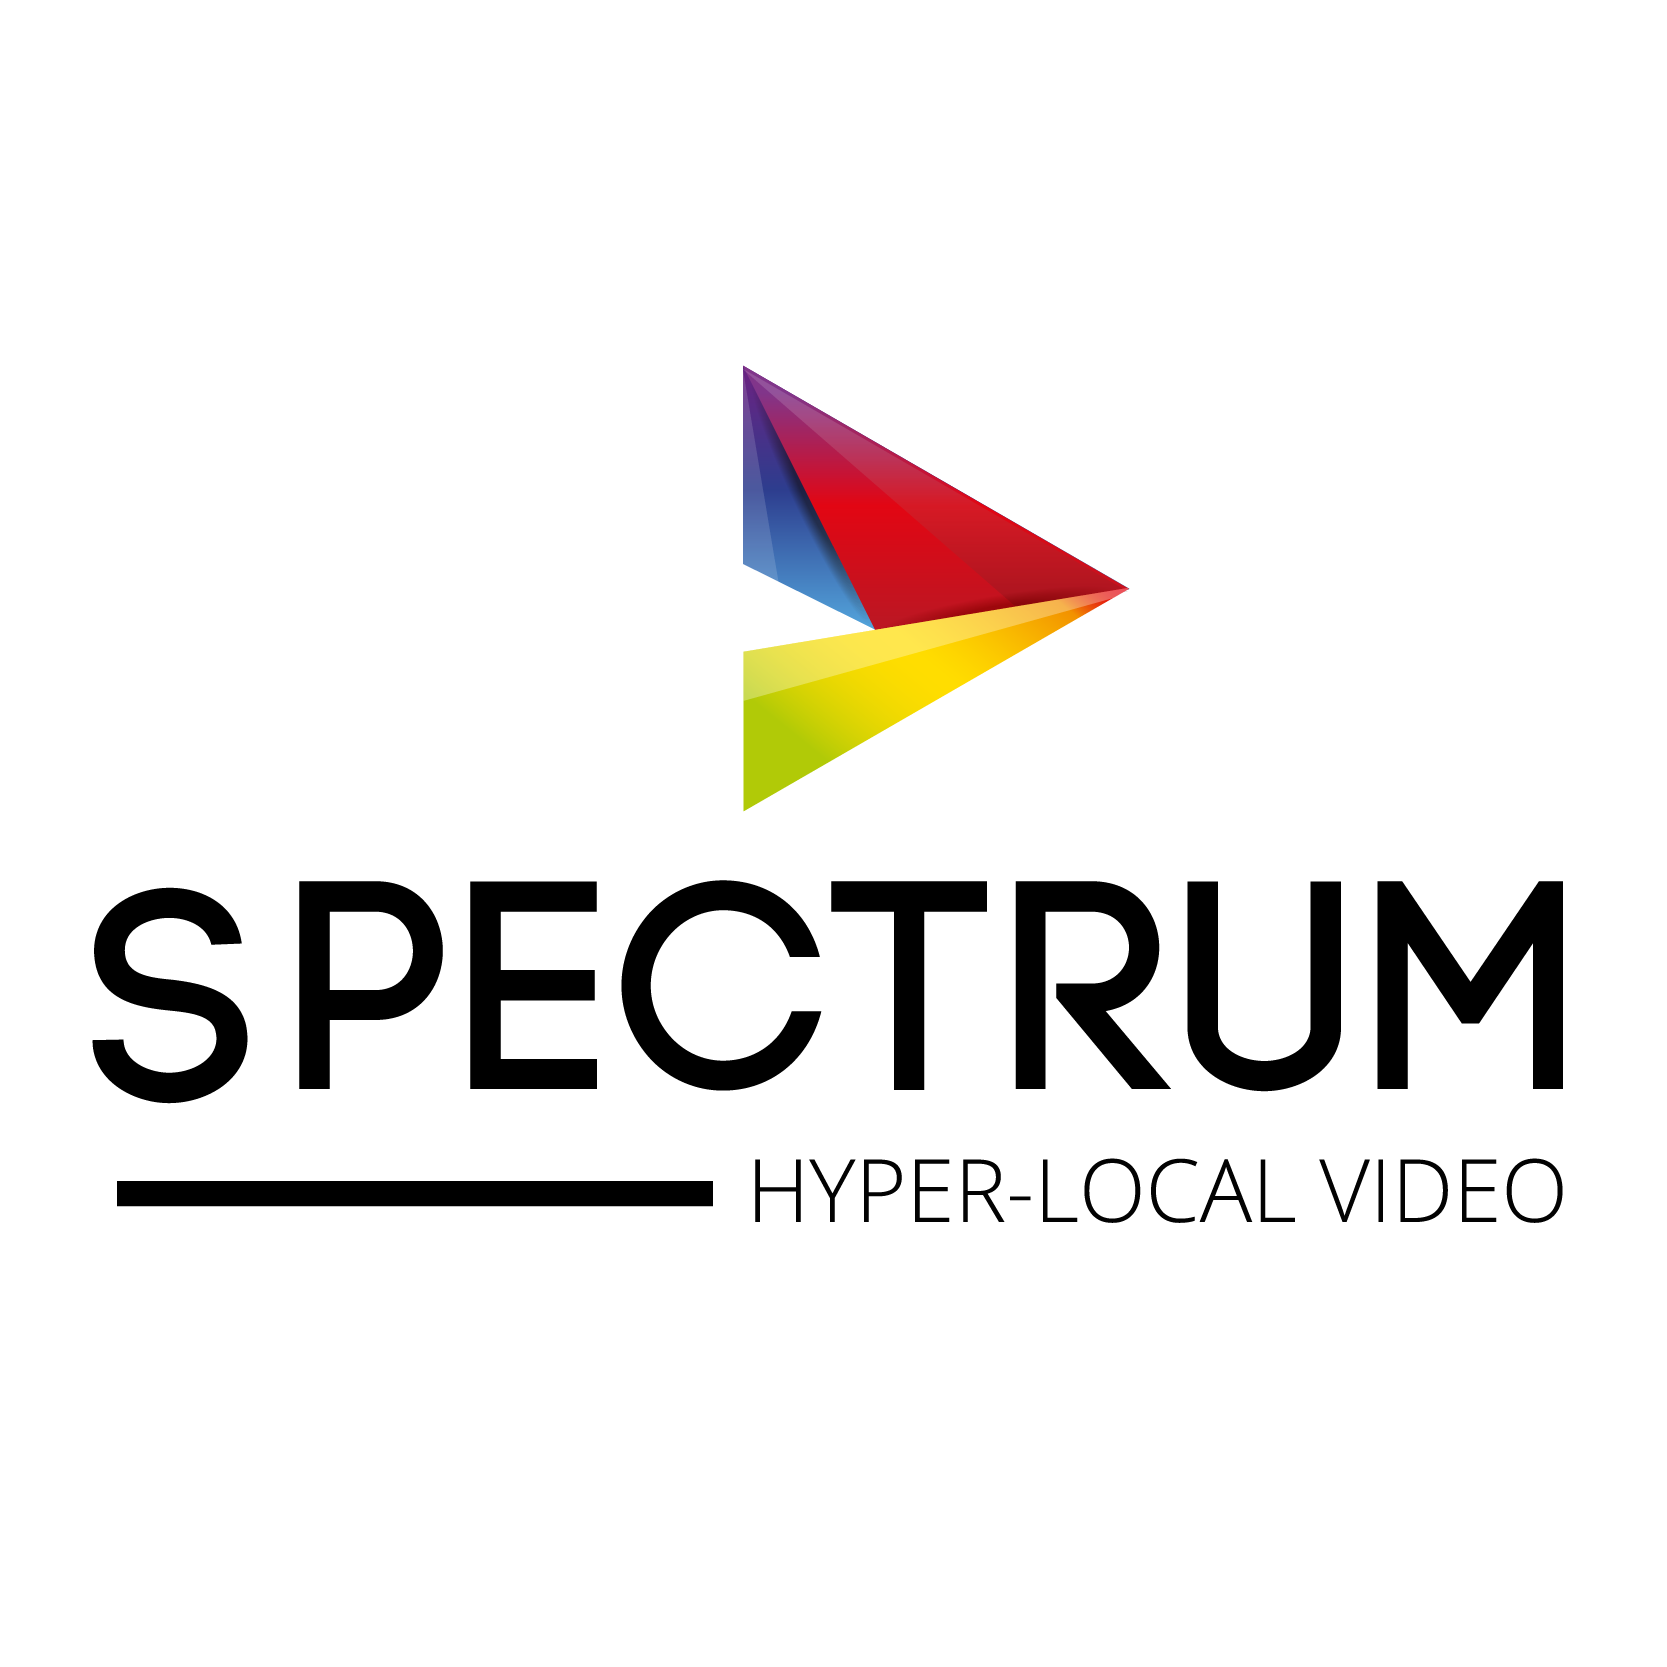 Final-Spectrum-Logo-01.png